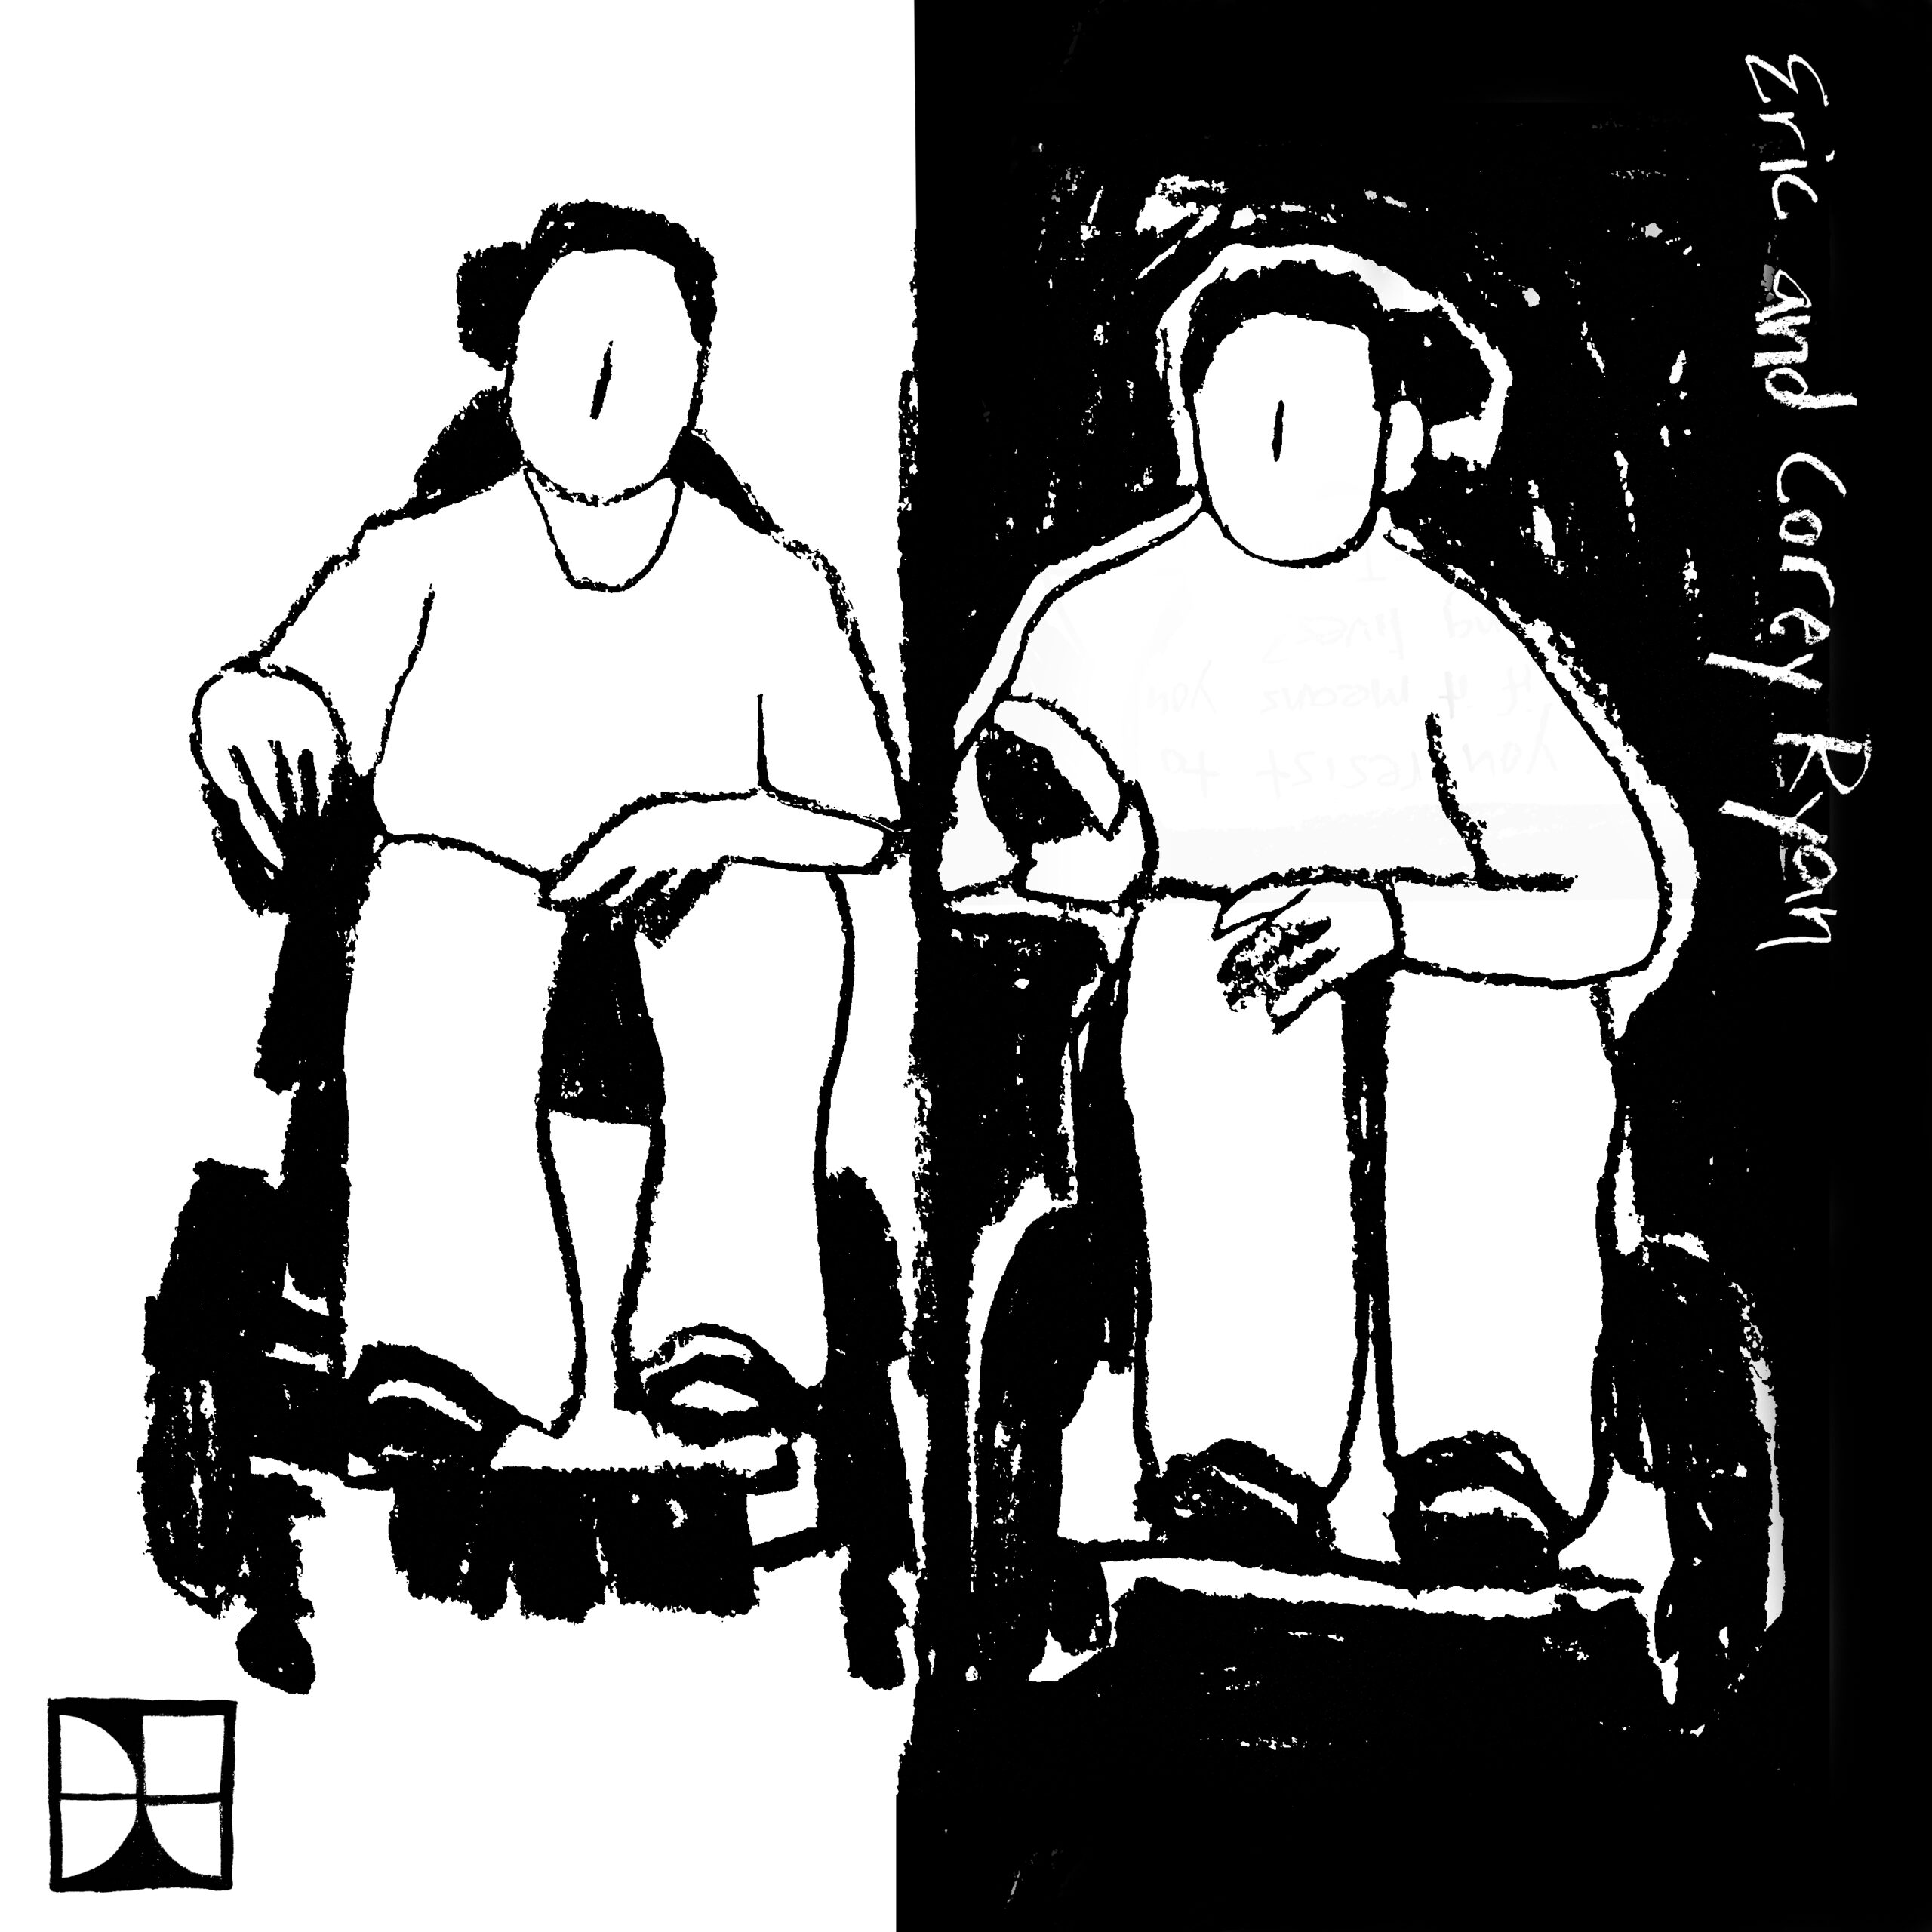 Black and white charcoal drawing. Two people sit side by side in power wheelchairs. The left half of the background is white and the right half is black. Eric and Corey Ryan are written along the upper right edge of the drawing. The DisTopia logo is in the lower left corner.